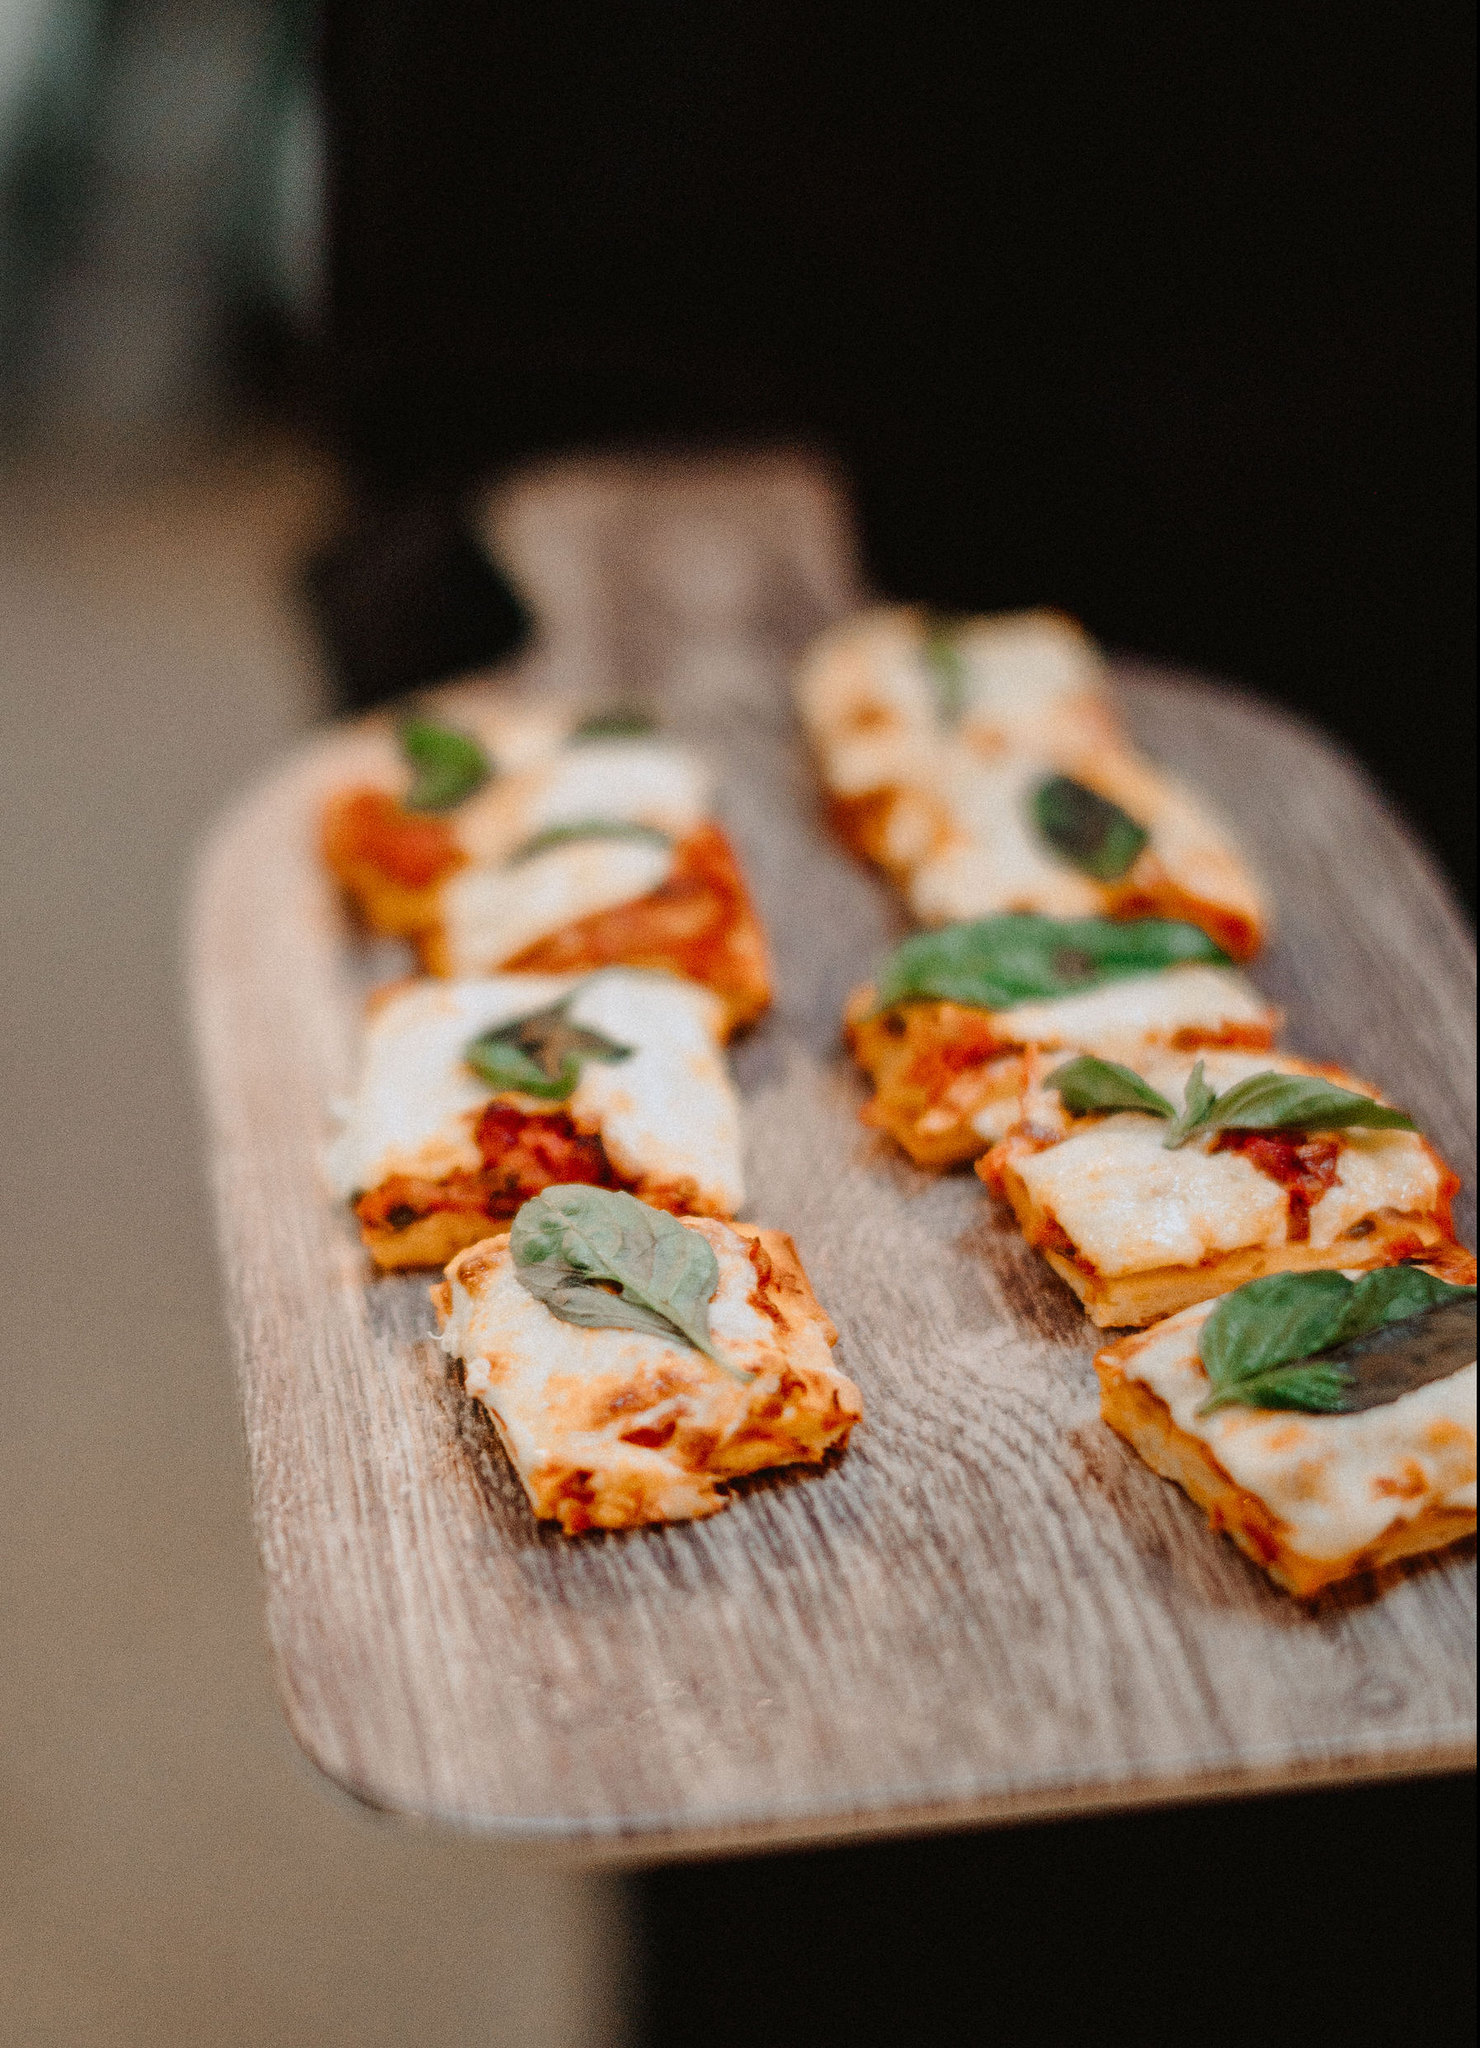 Lasagna being served as hors d'oeuvres on a rustic wooden board.